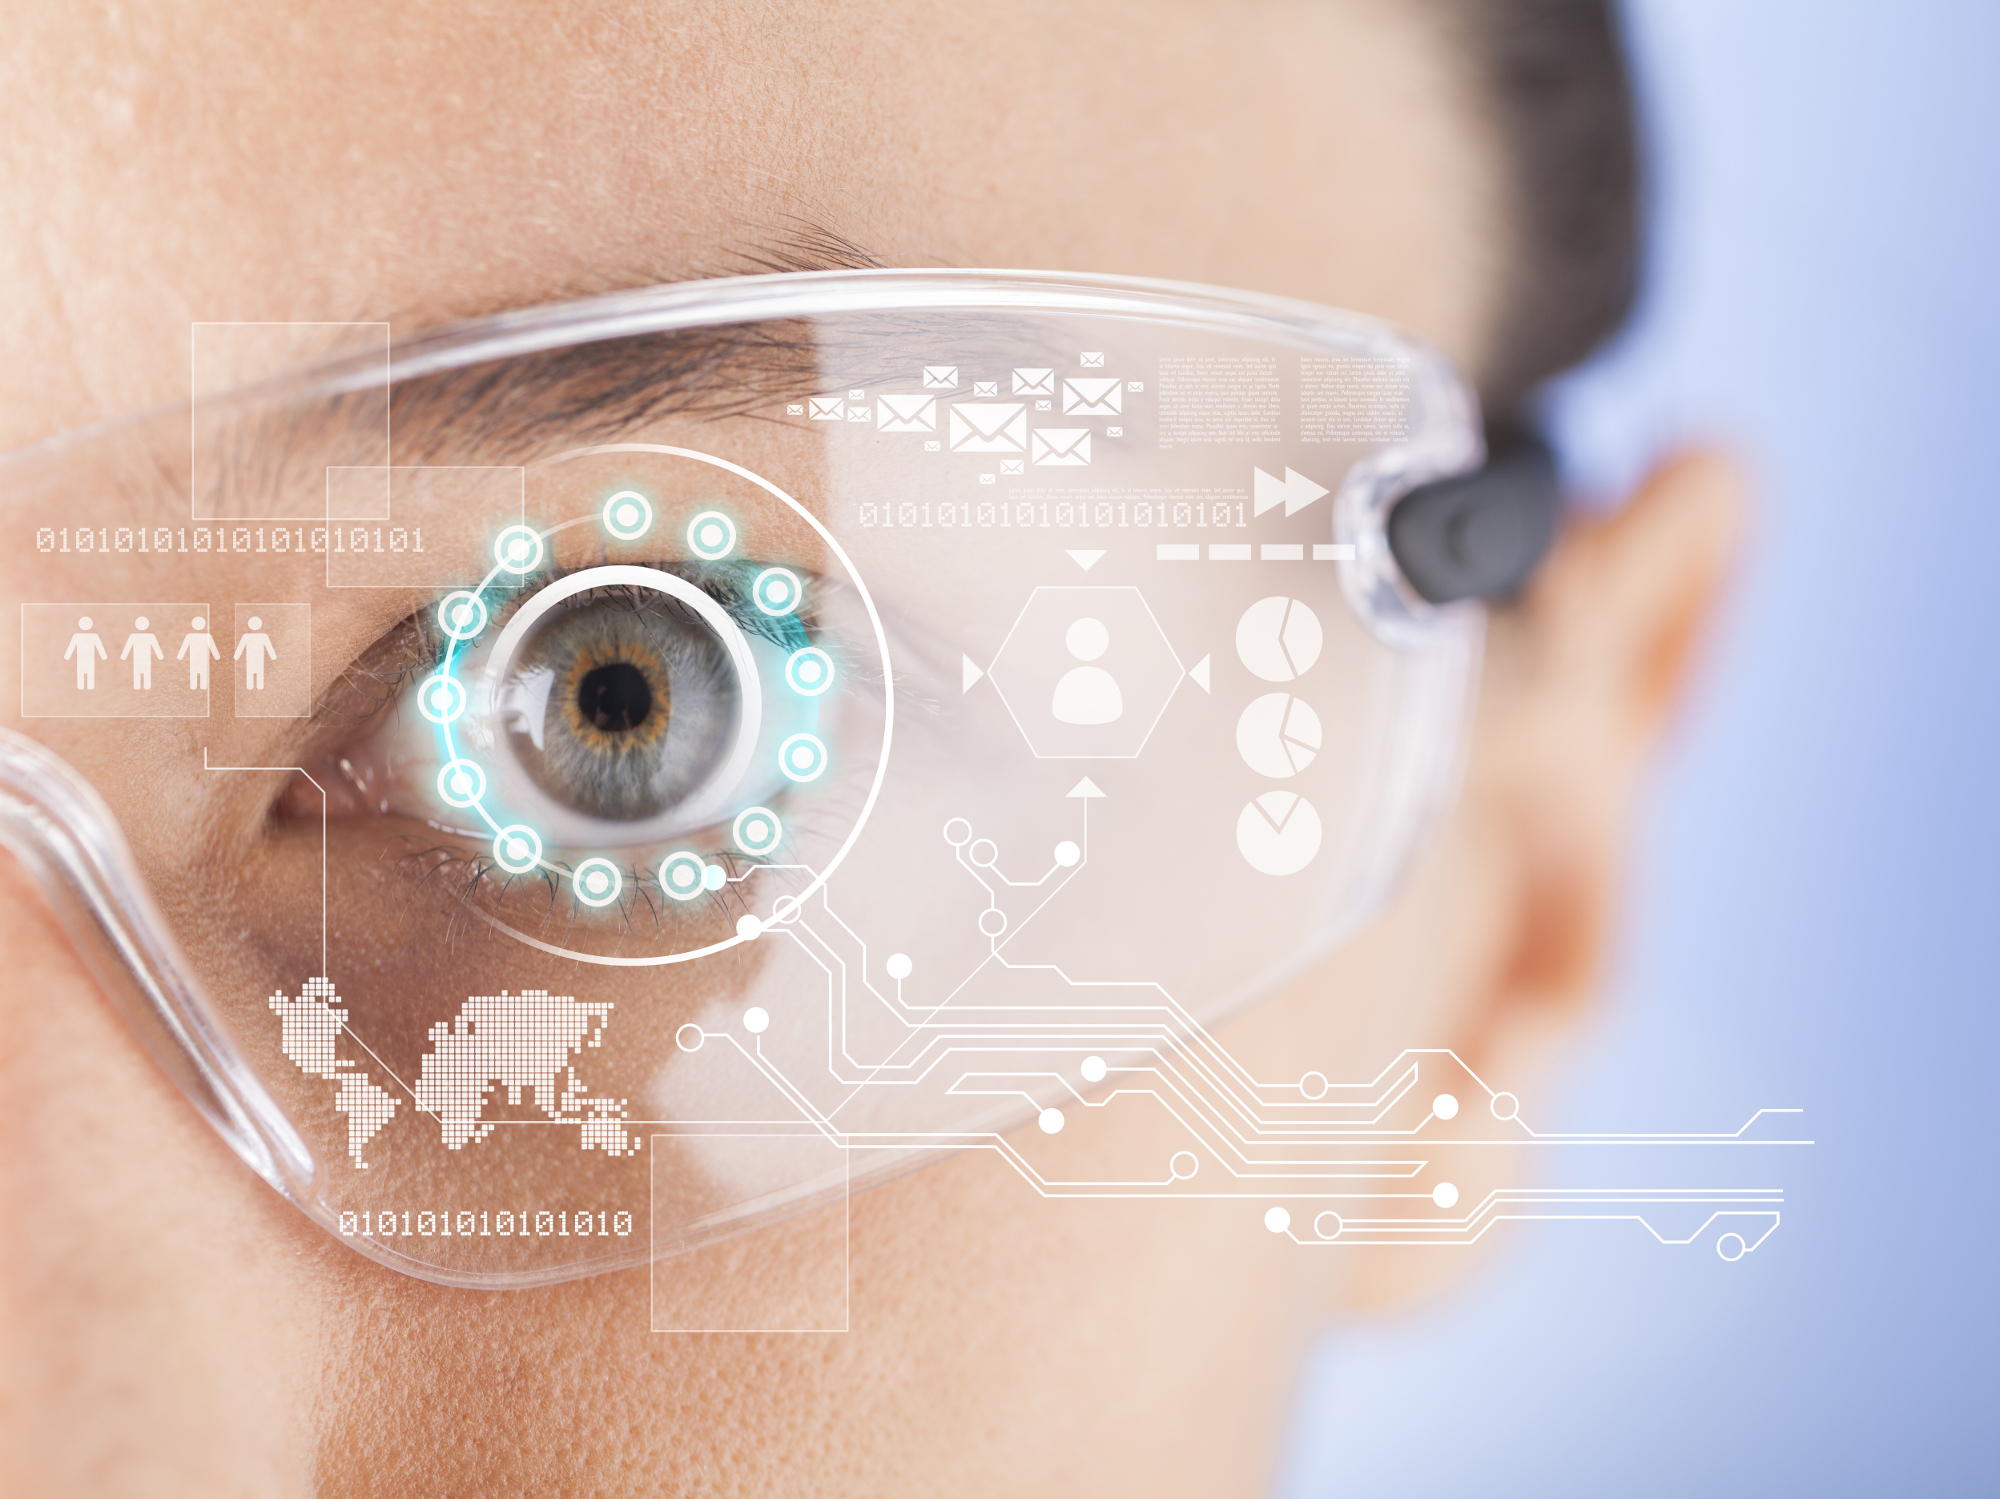 Futuristic smart glasses